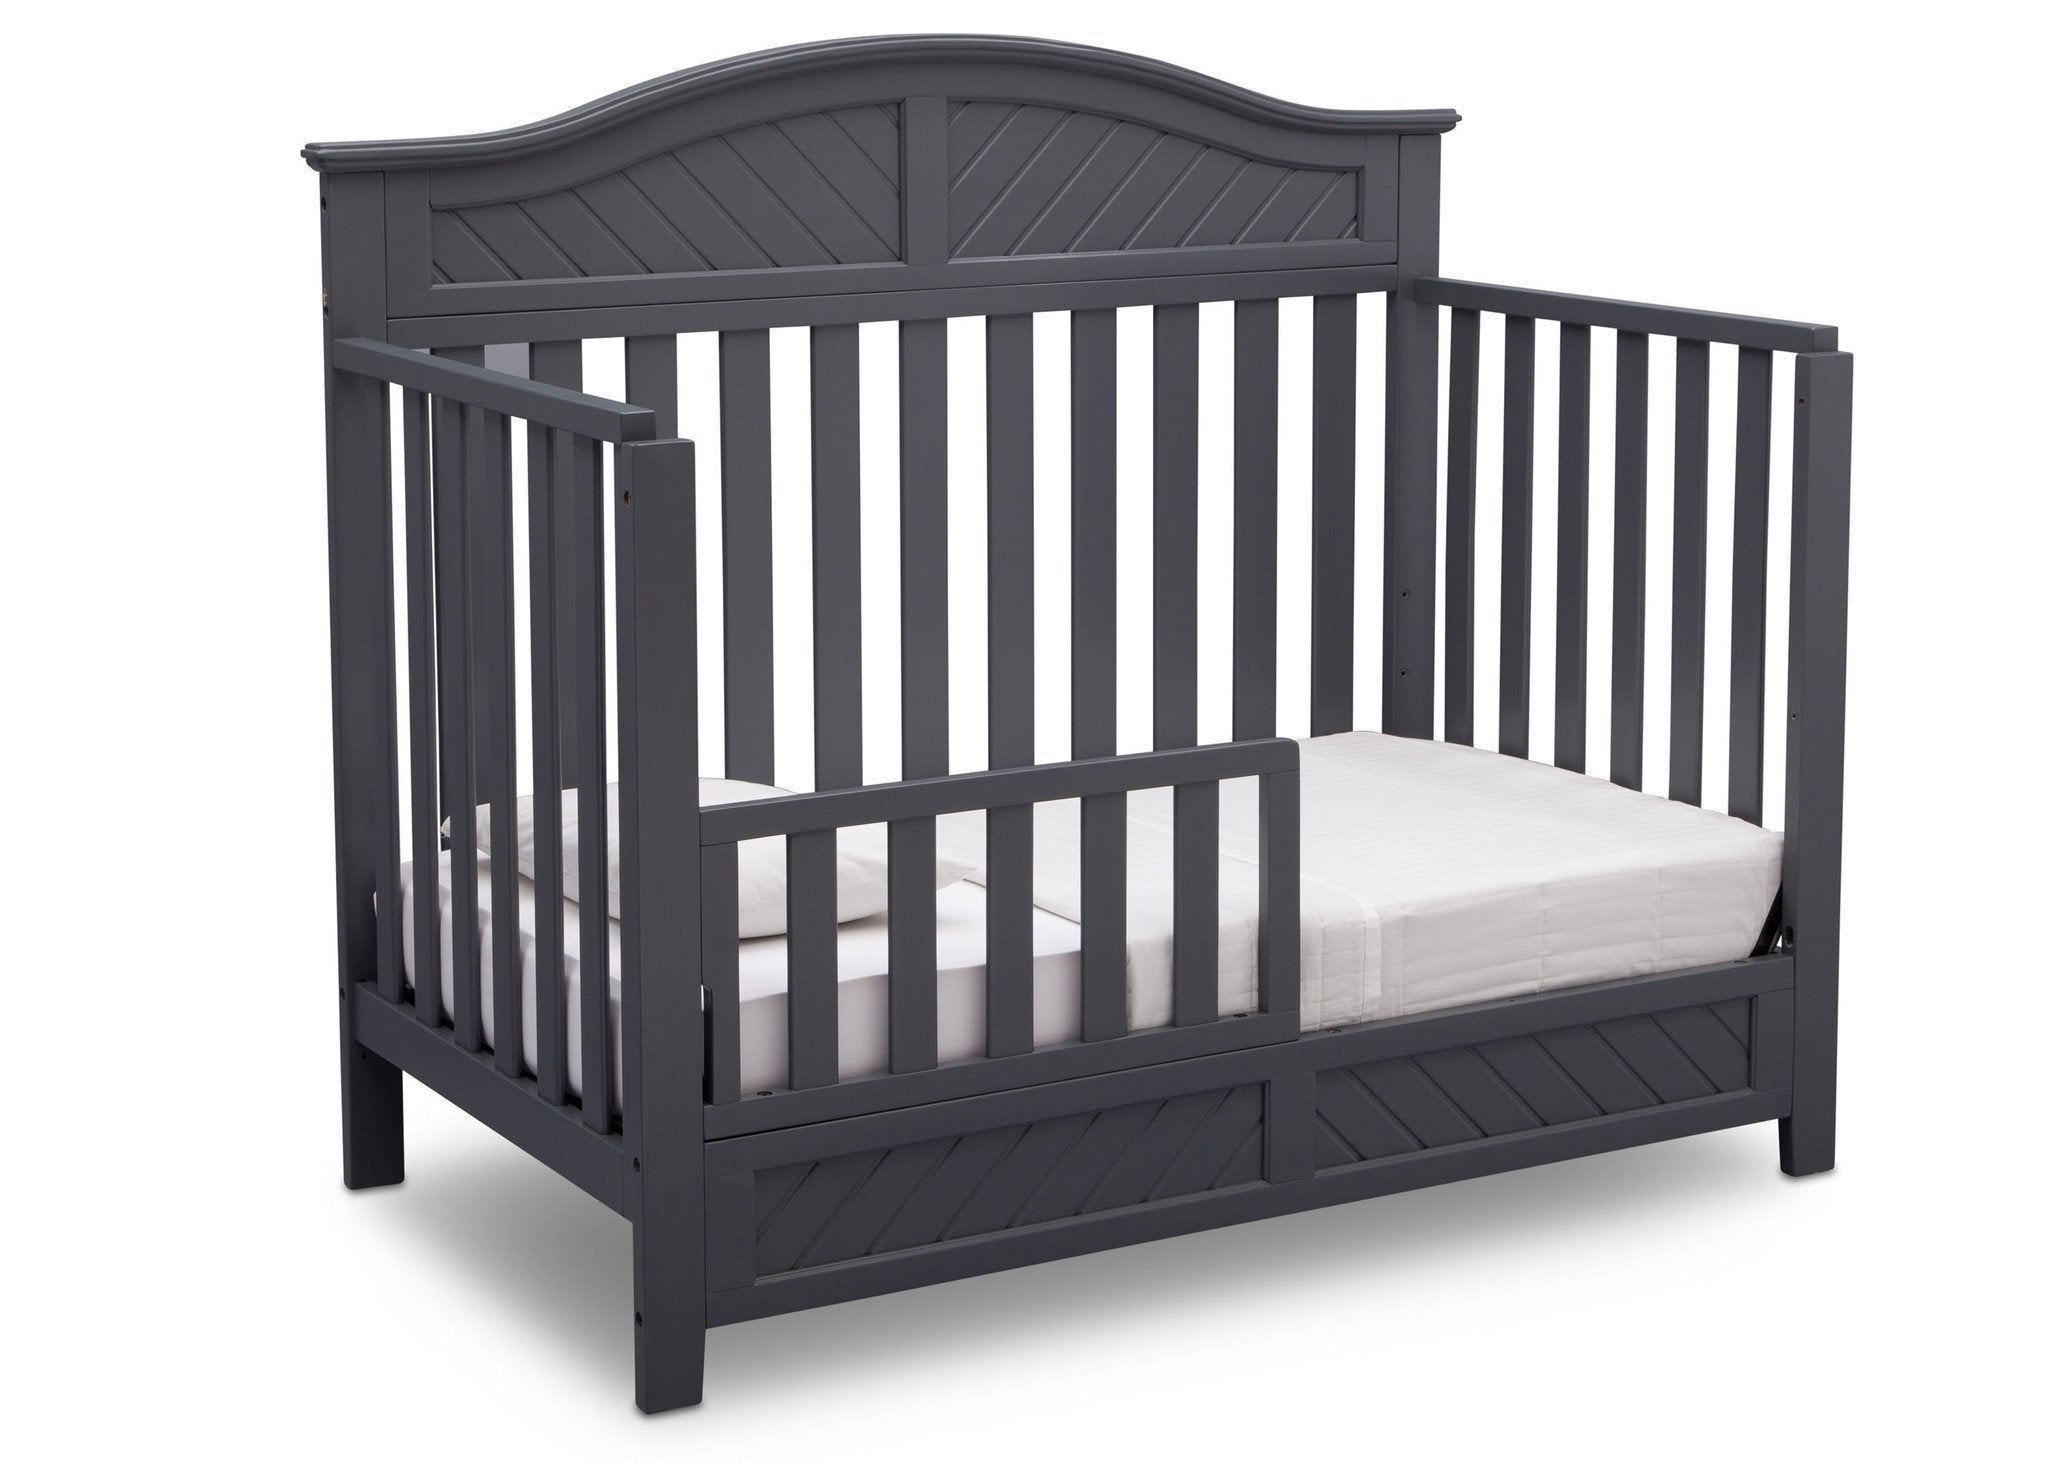 Delta Children Charcoal (029) Bennington Elite Curved 4-in-1 Crib angled conversion to toddler bed c4c